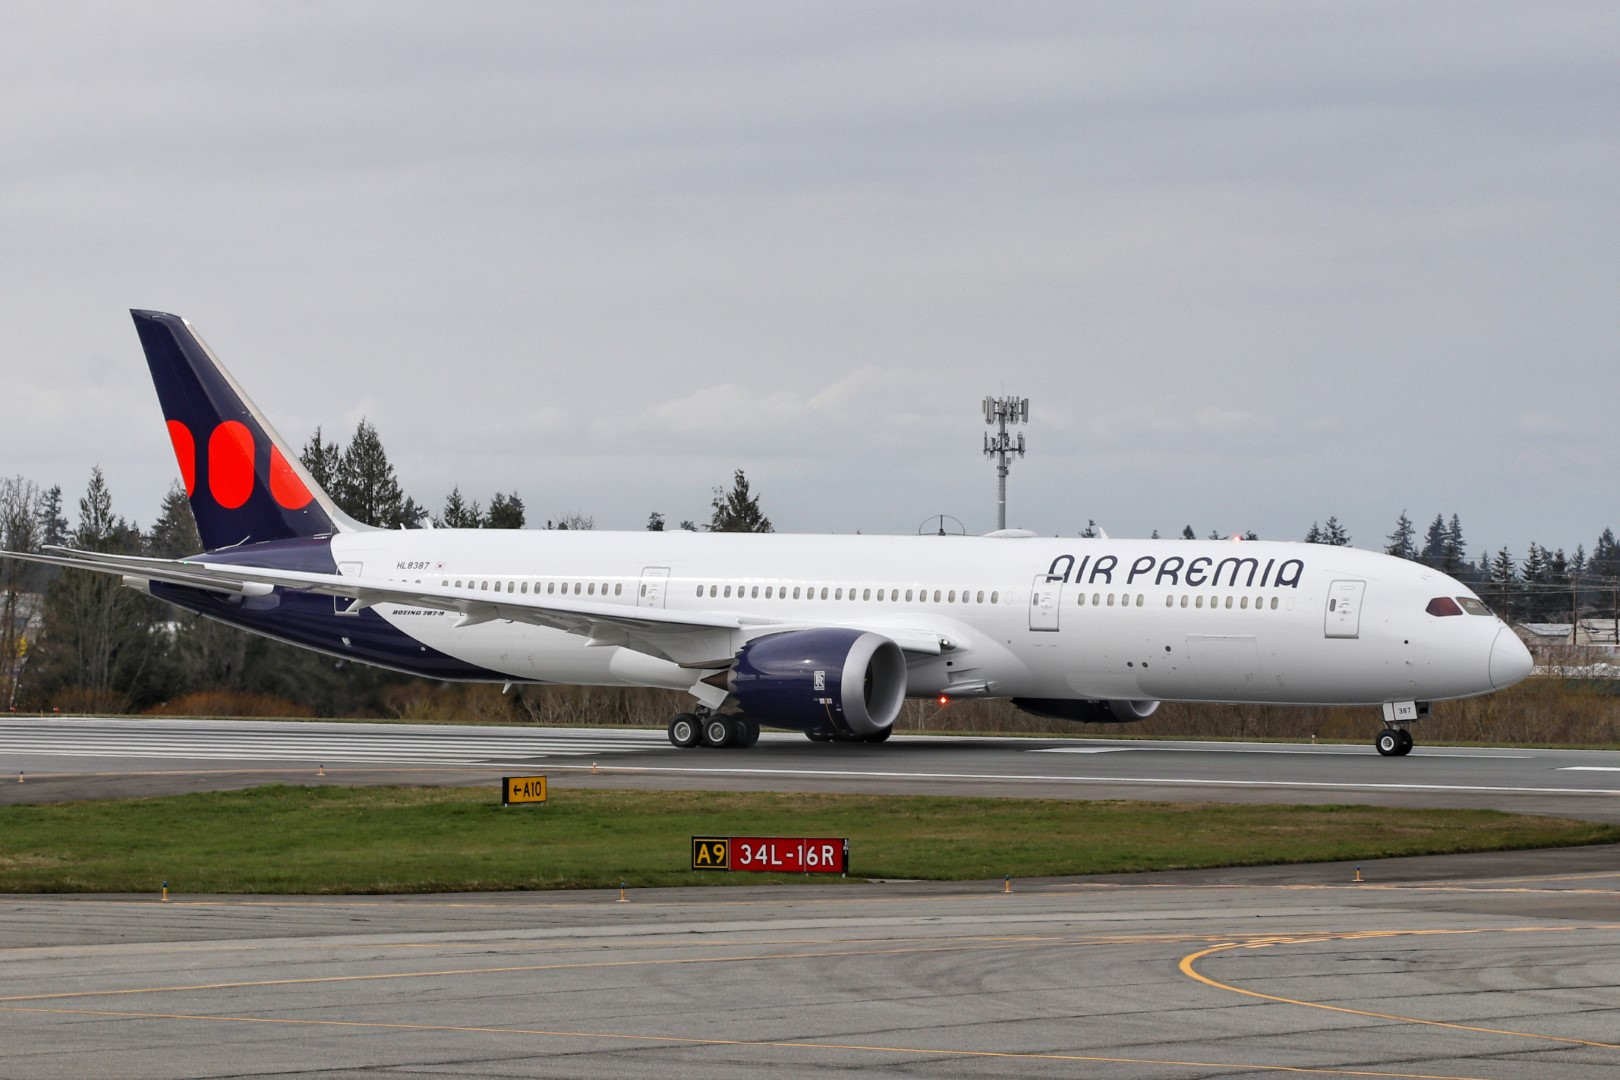 An Air Premia takes off for its delivery flight from Everett, Wash. to Seoul's Incheon International Airport.